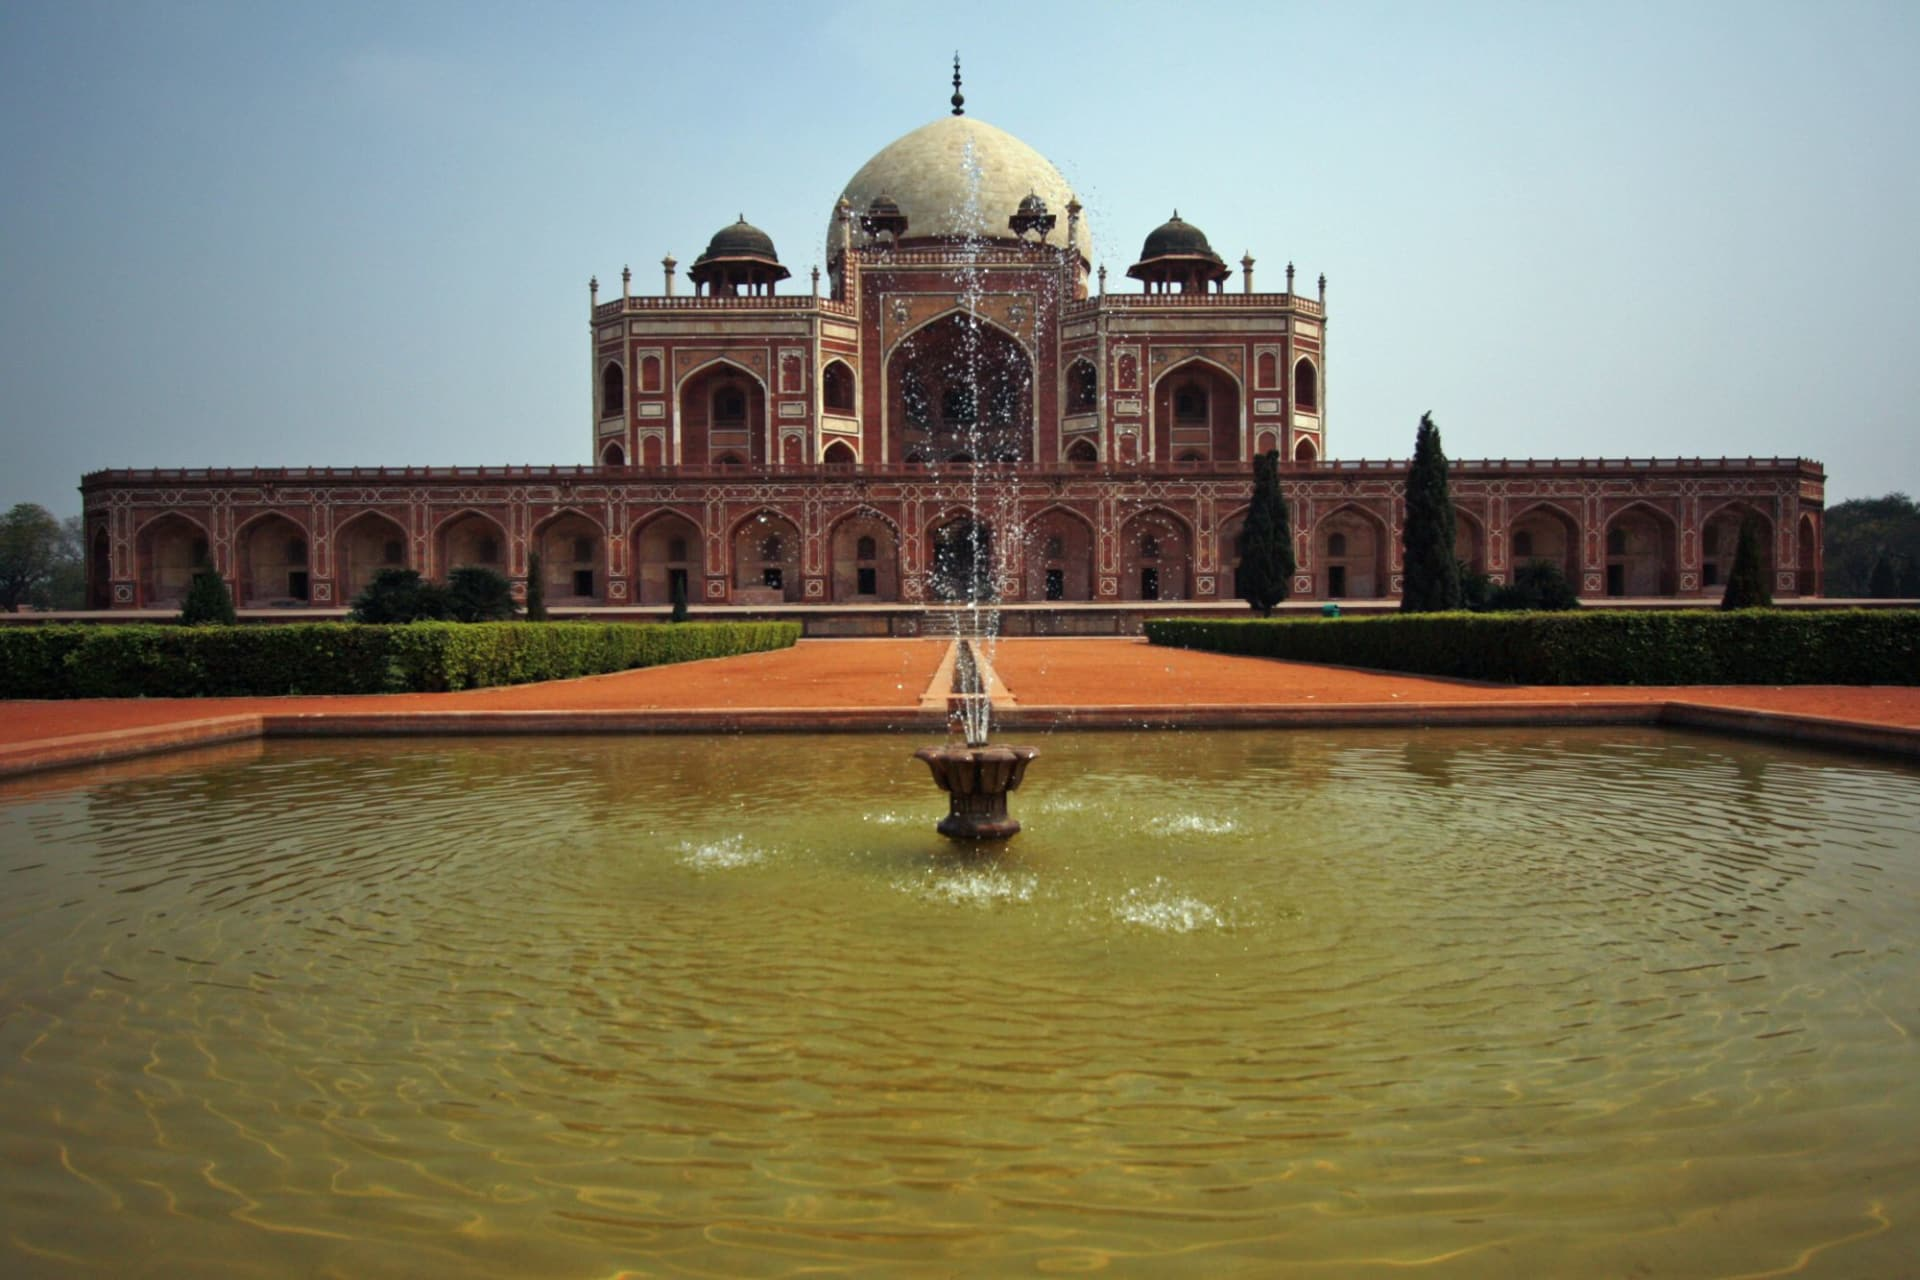 Delhi Humayuns Tomb